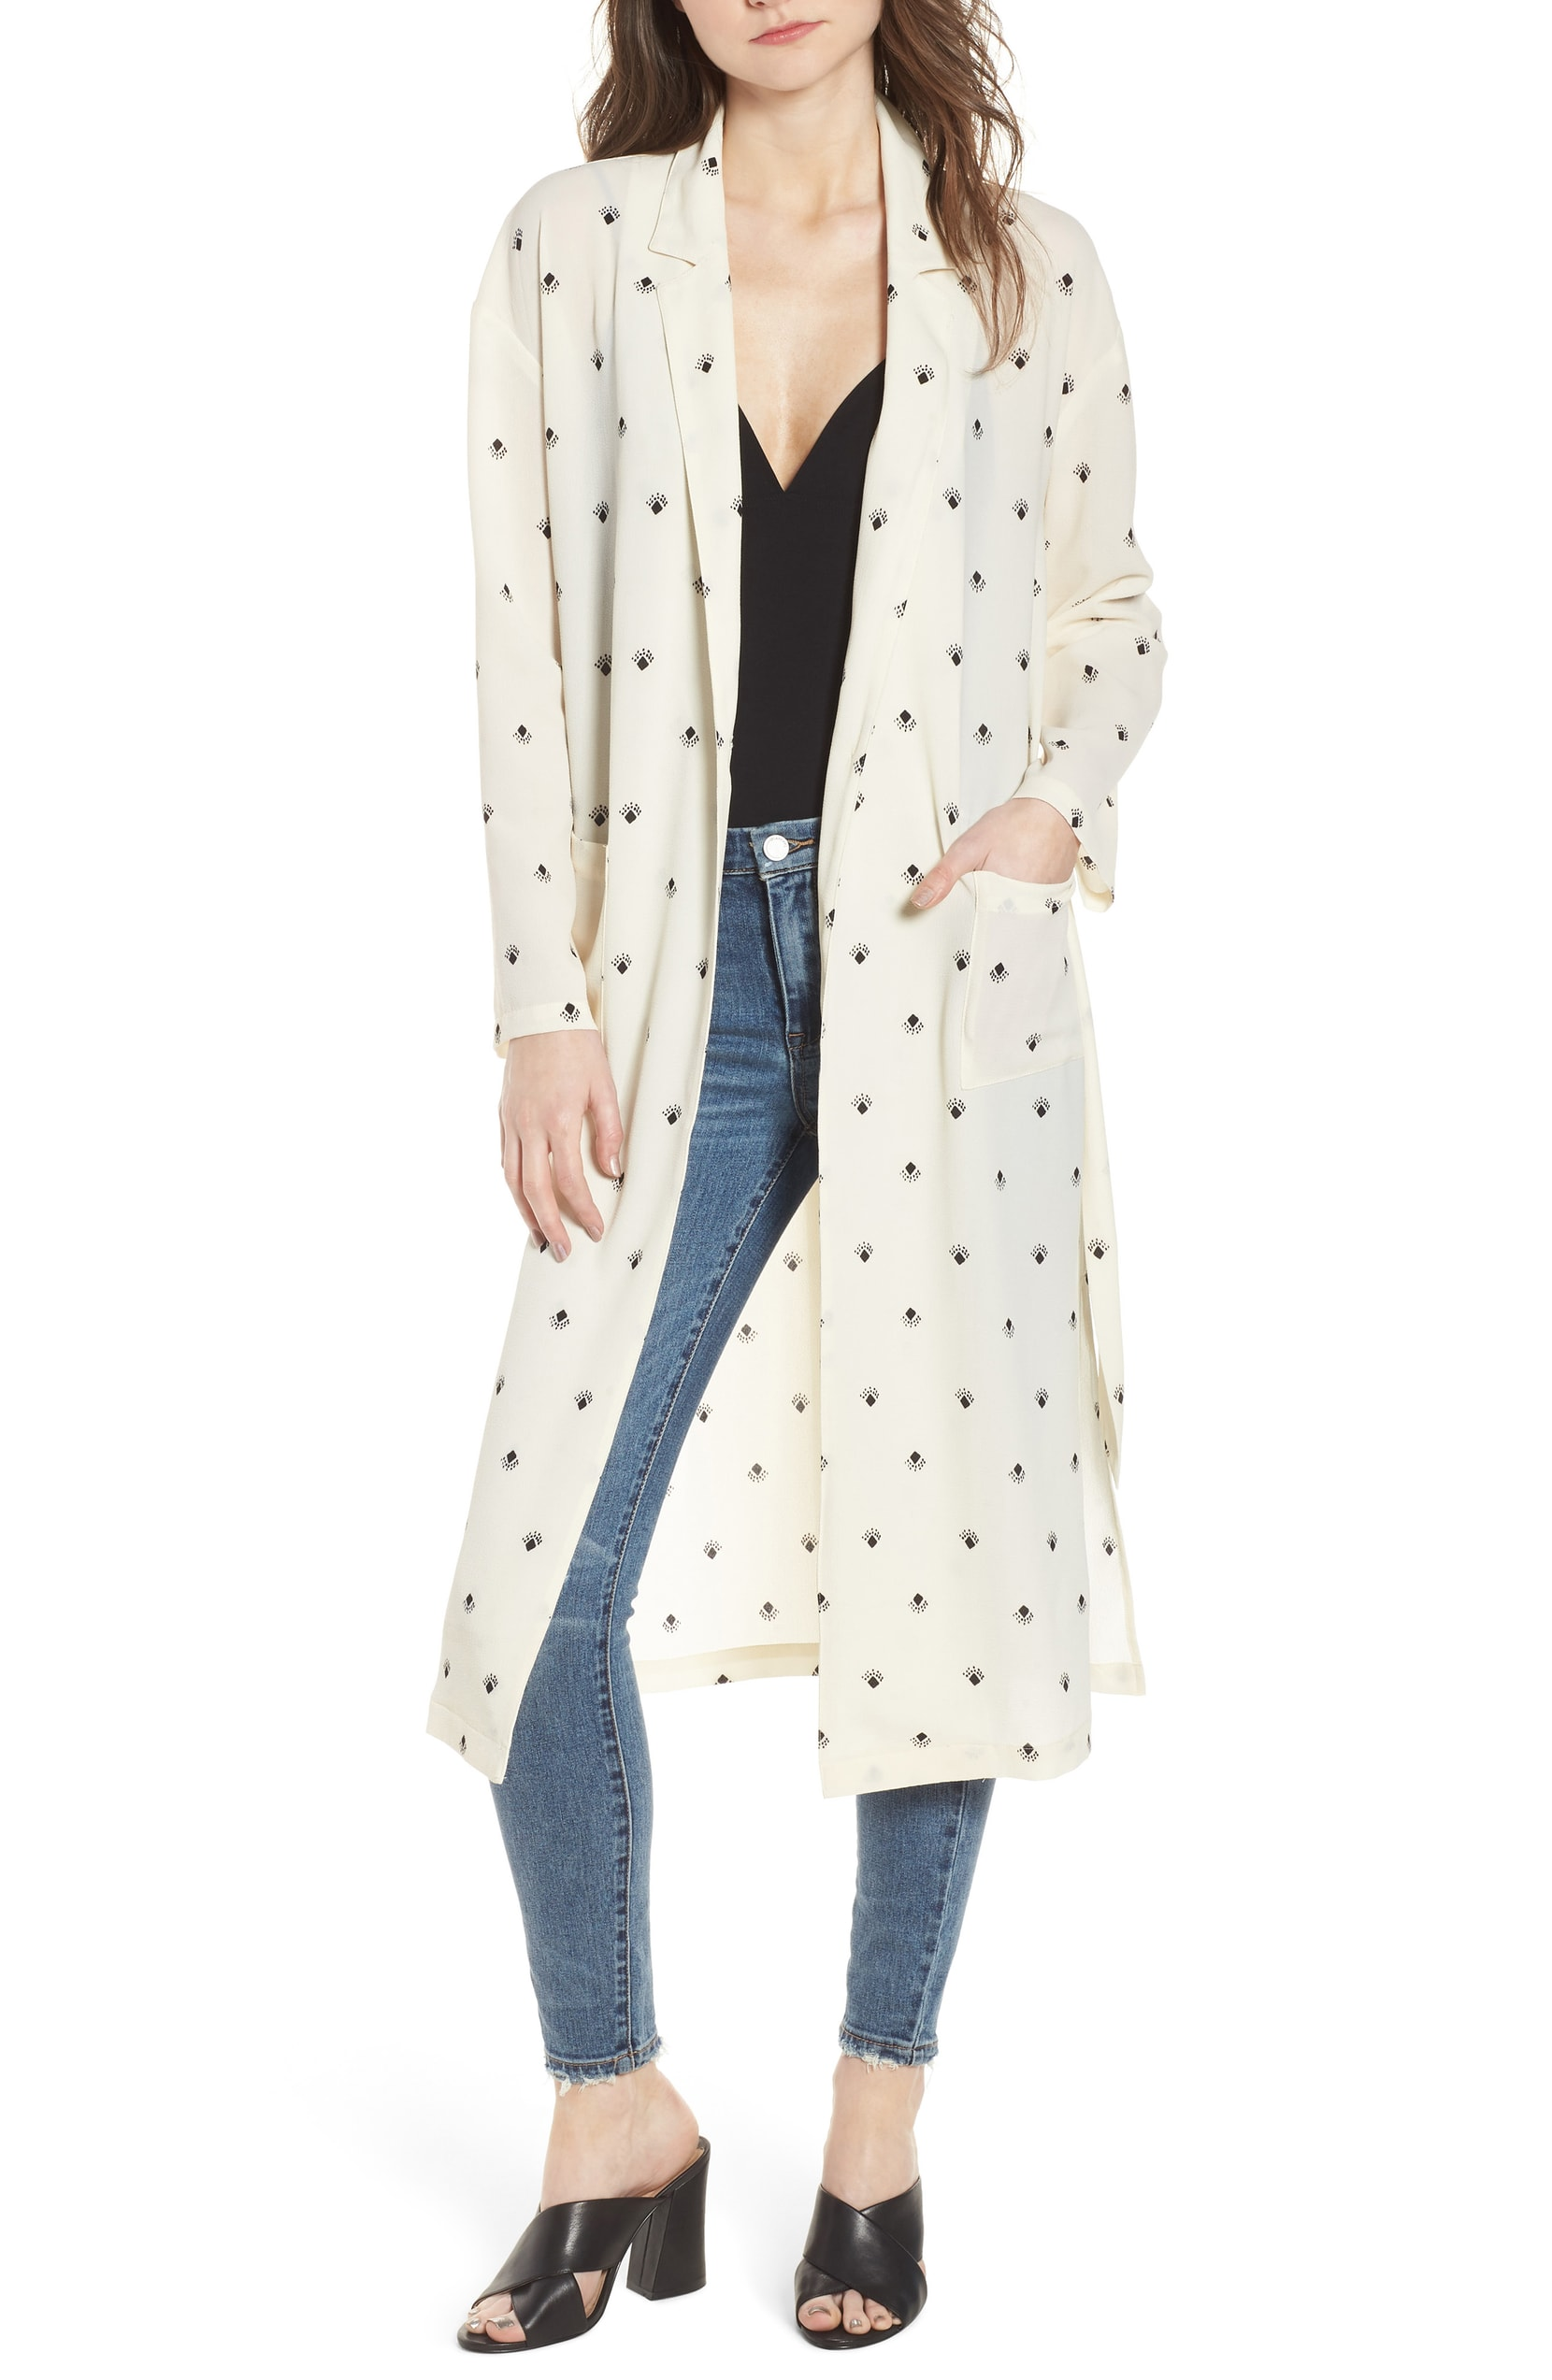 The Trend: Statement Jacket. Add a breezy element to your outfit this season in this lightweight duster styled with a sleek notched collar and a cute dotted motif. LEITH - $89.00 (Image: Nordstrom){ }